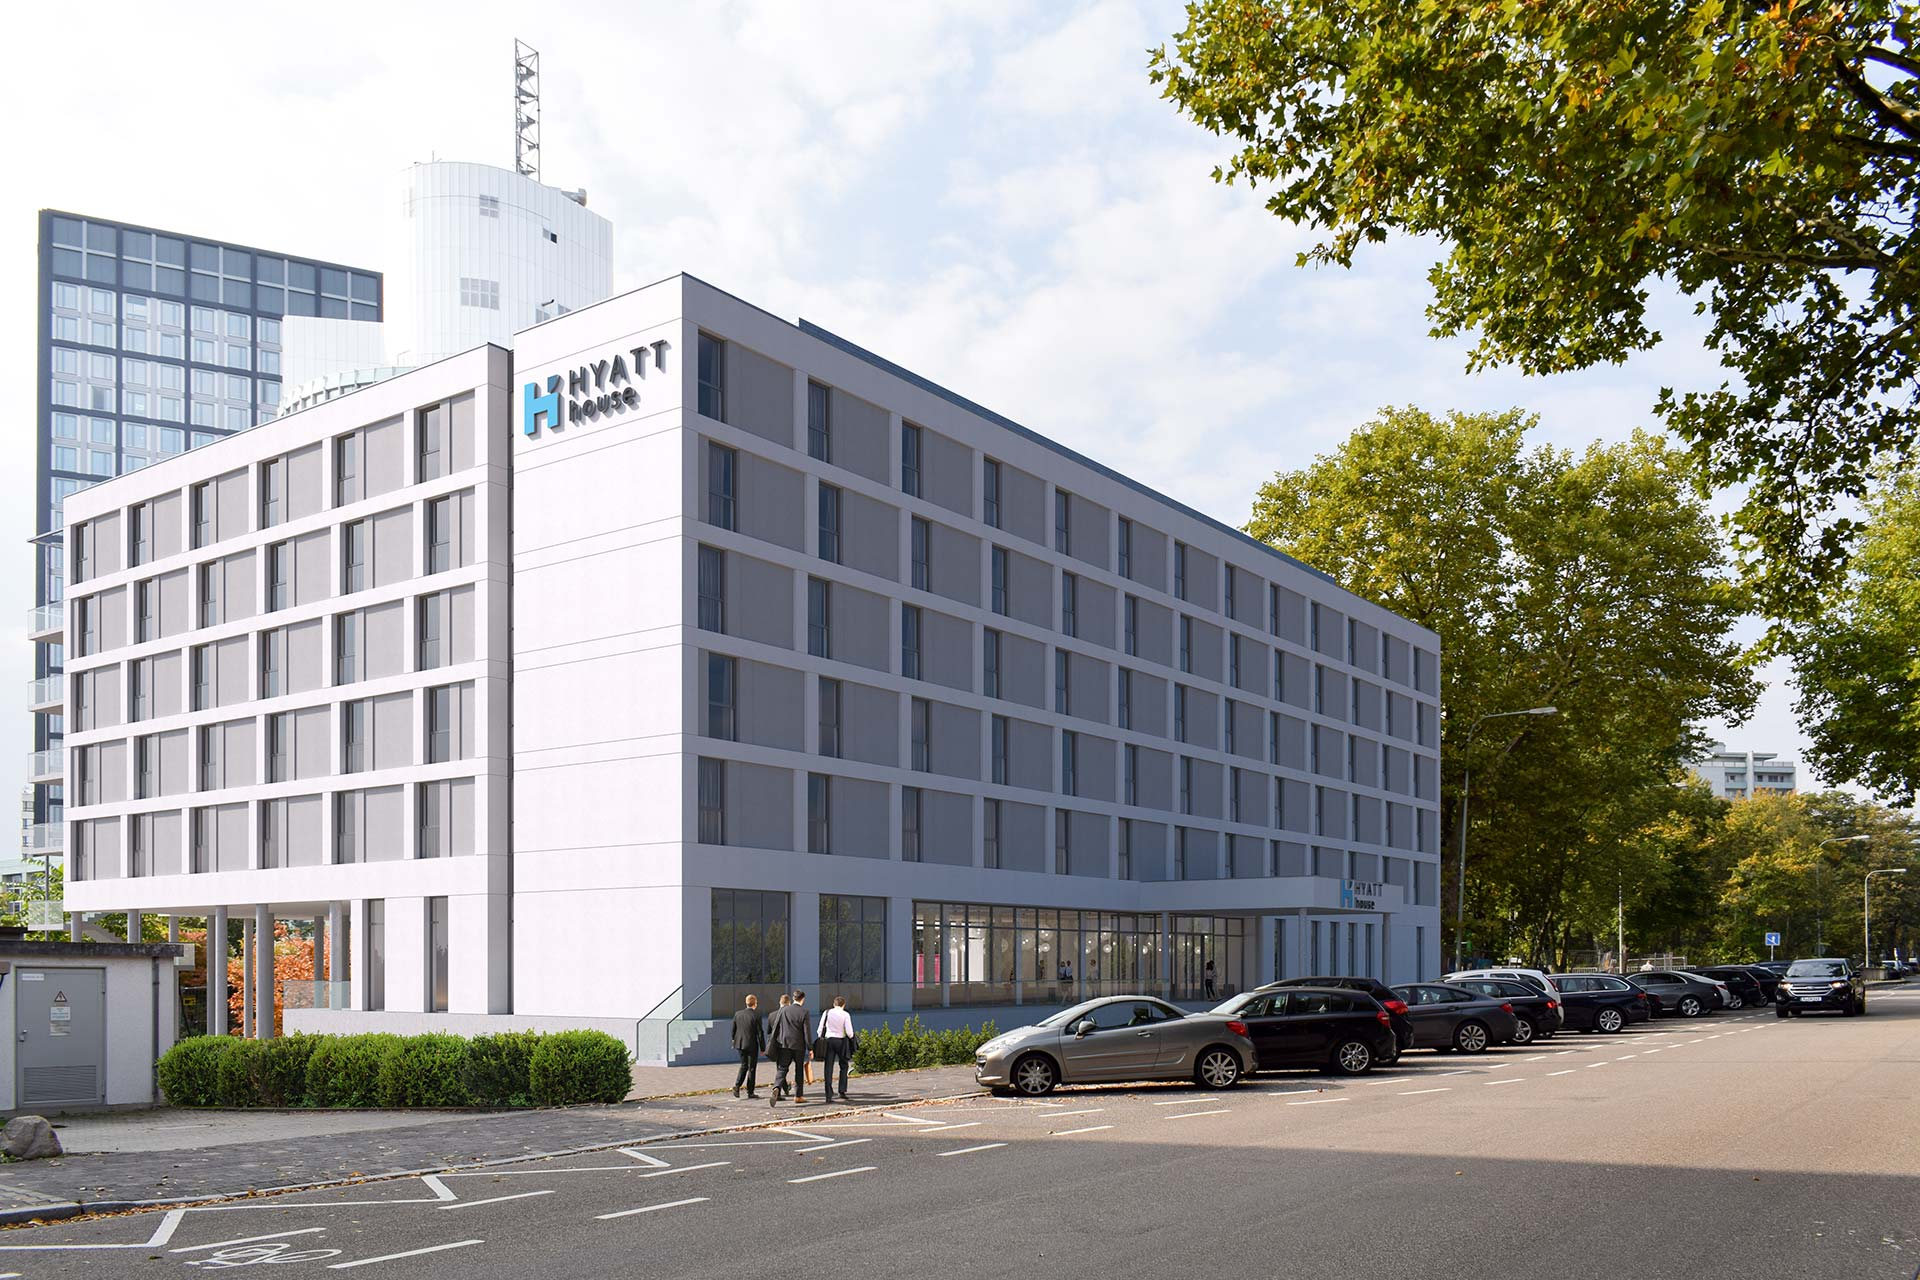 Hotel Hyatt House in Eschborn